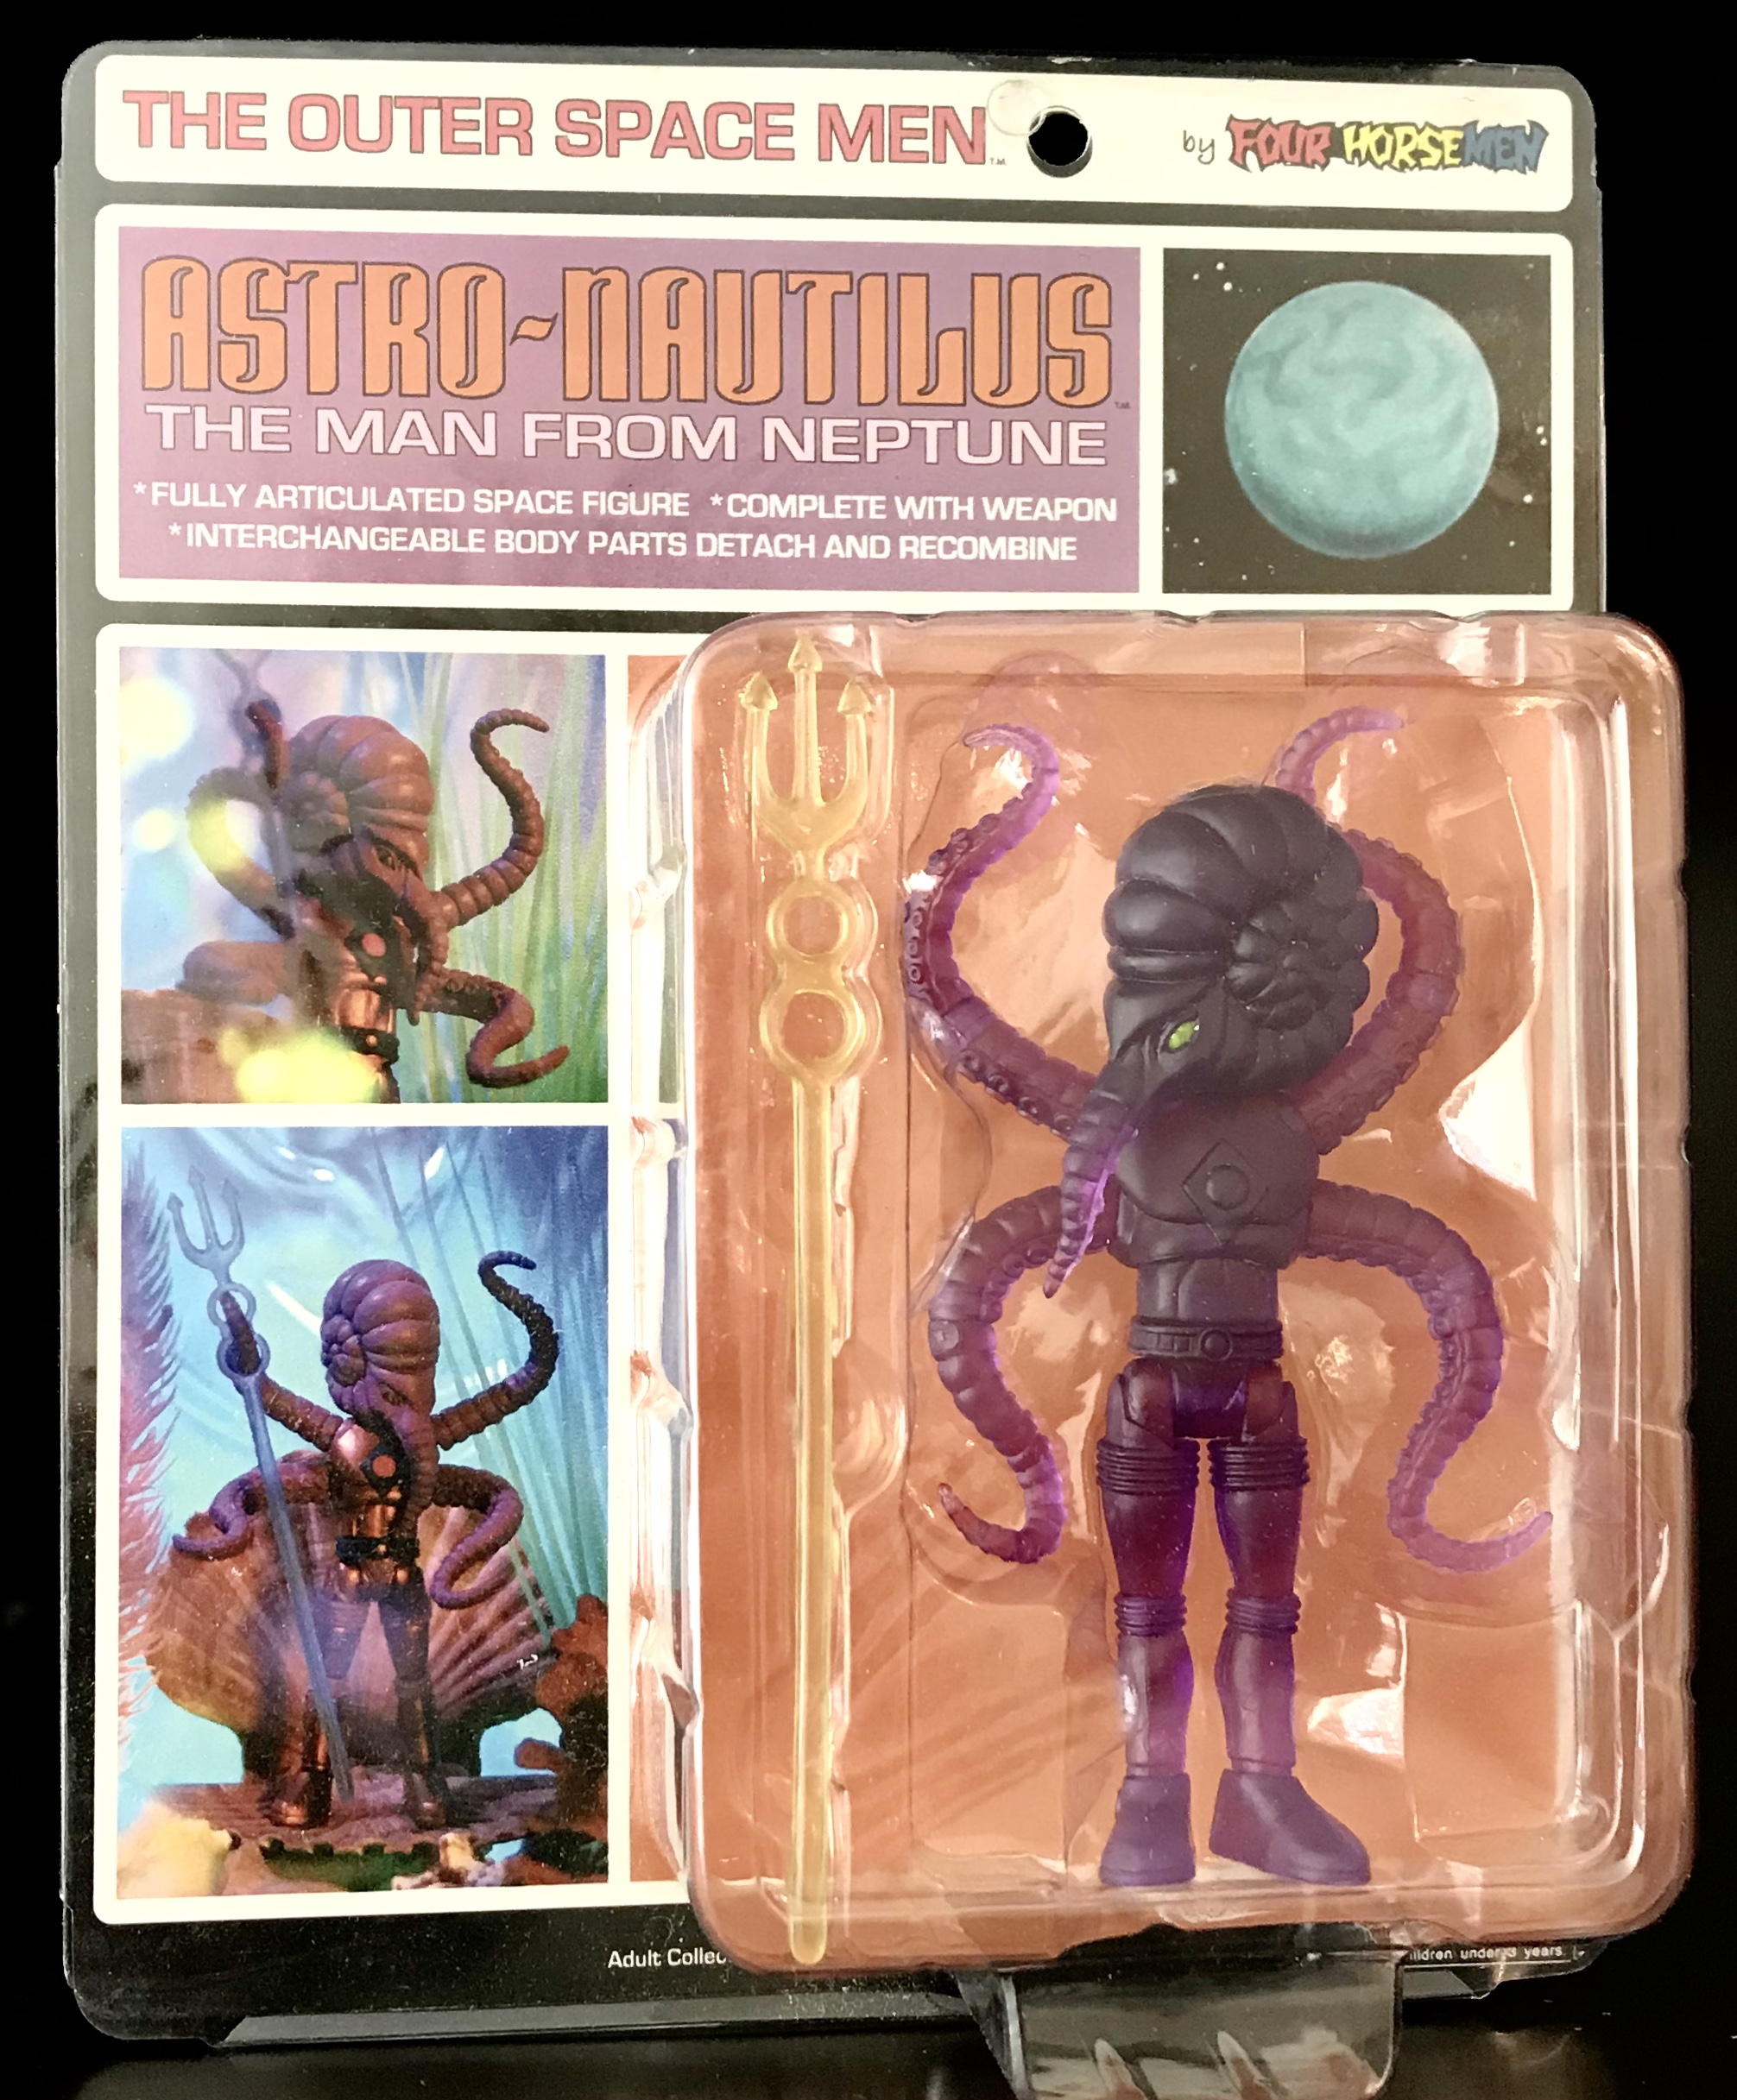 SINGLE CARDED GLYOS